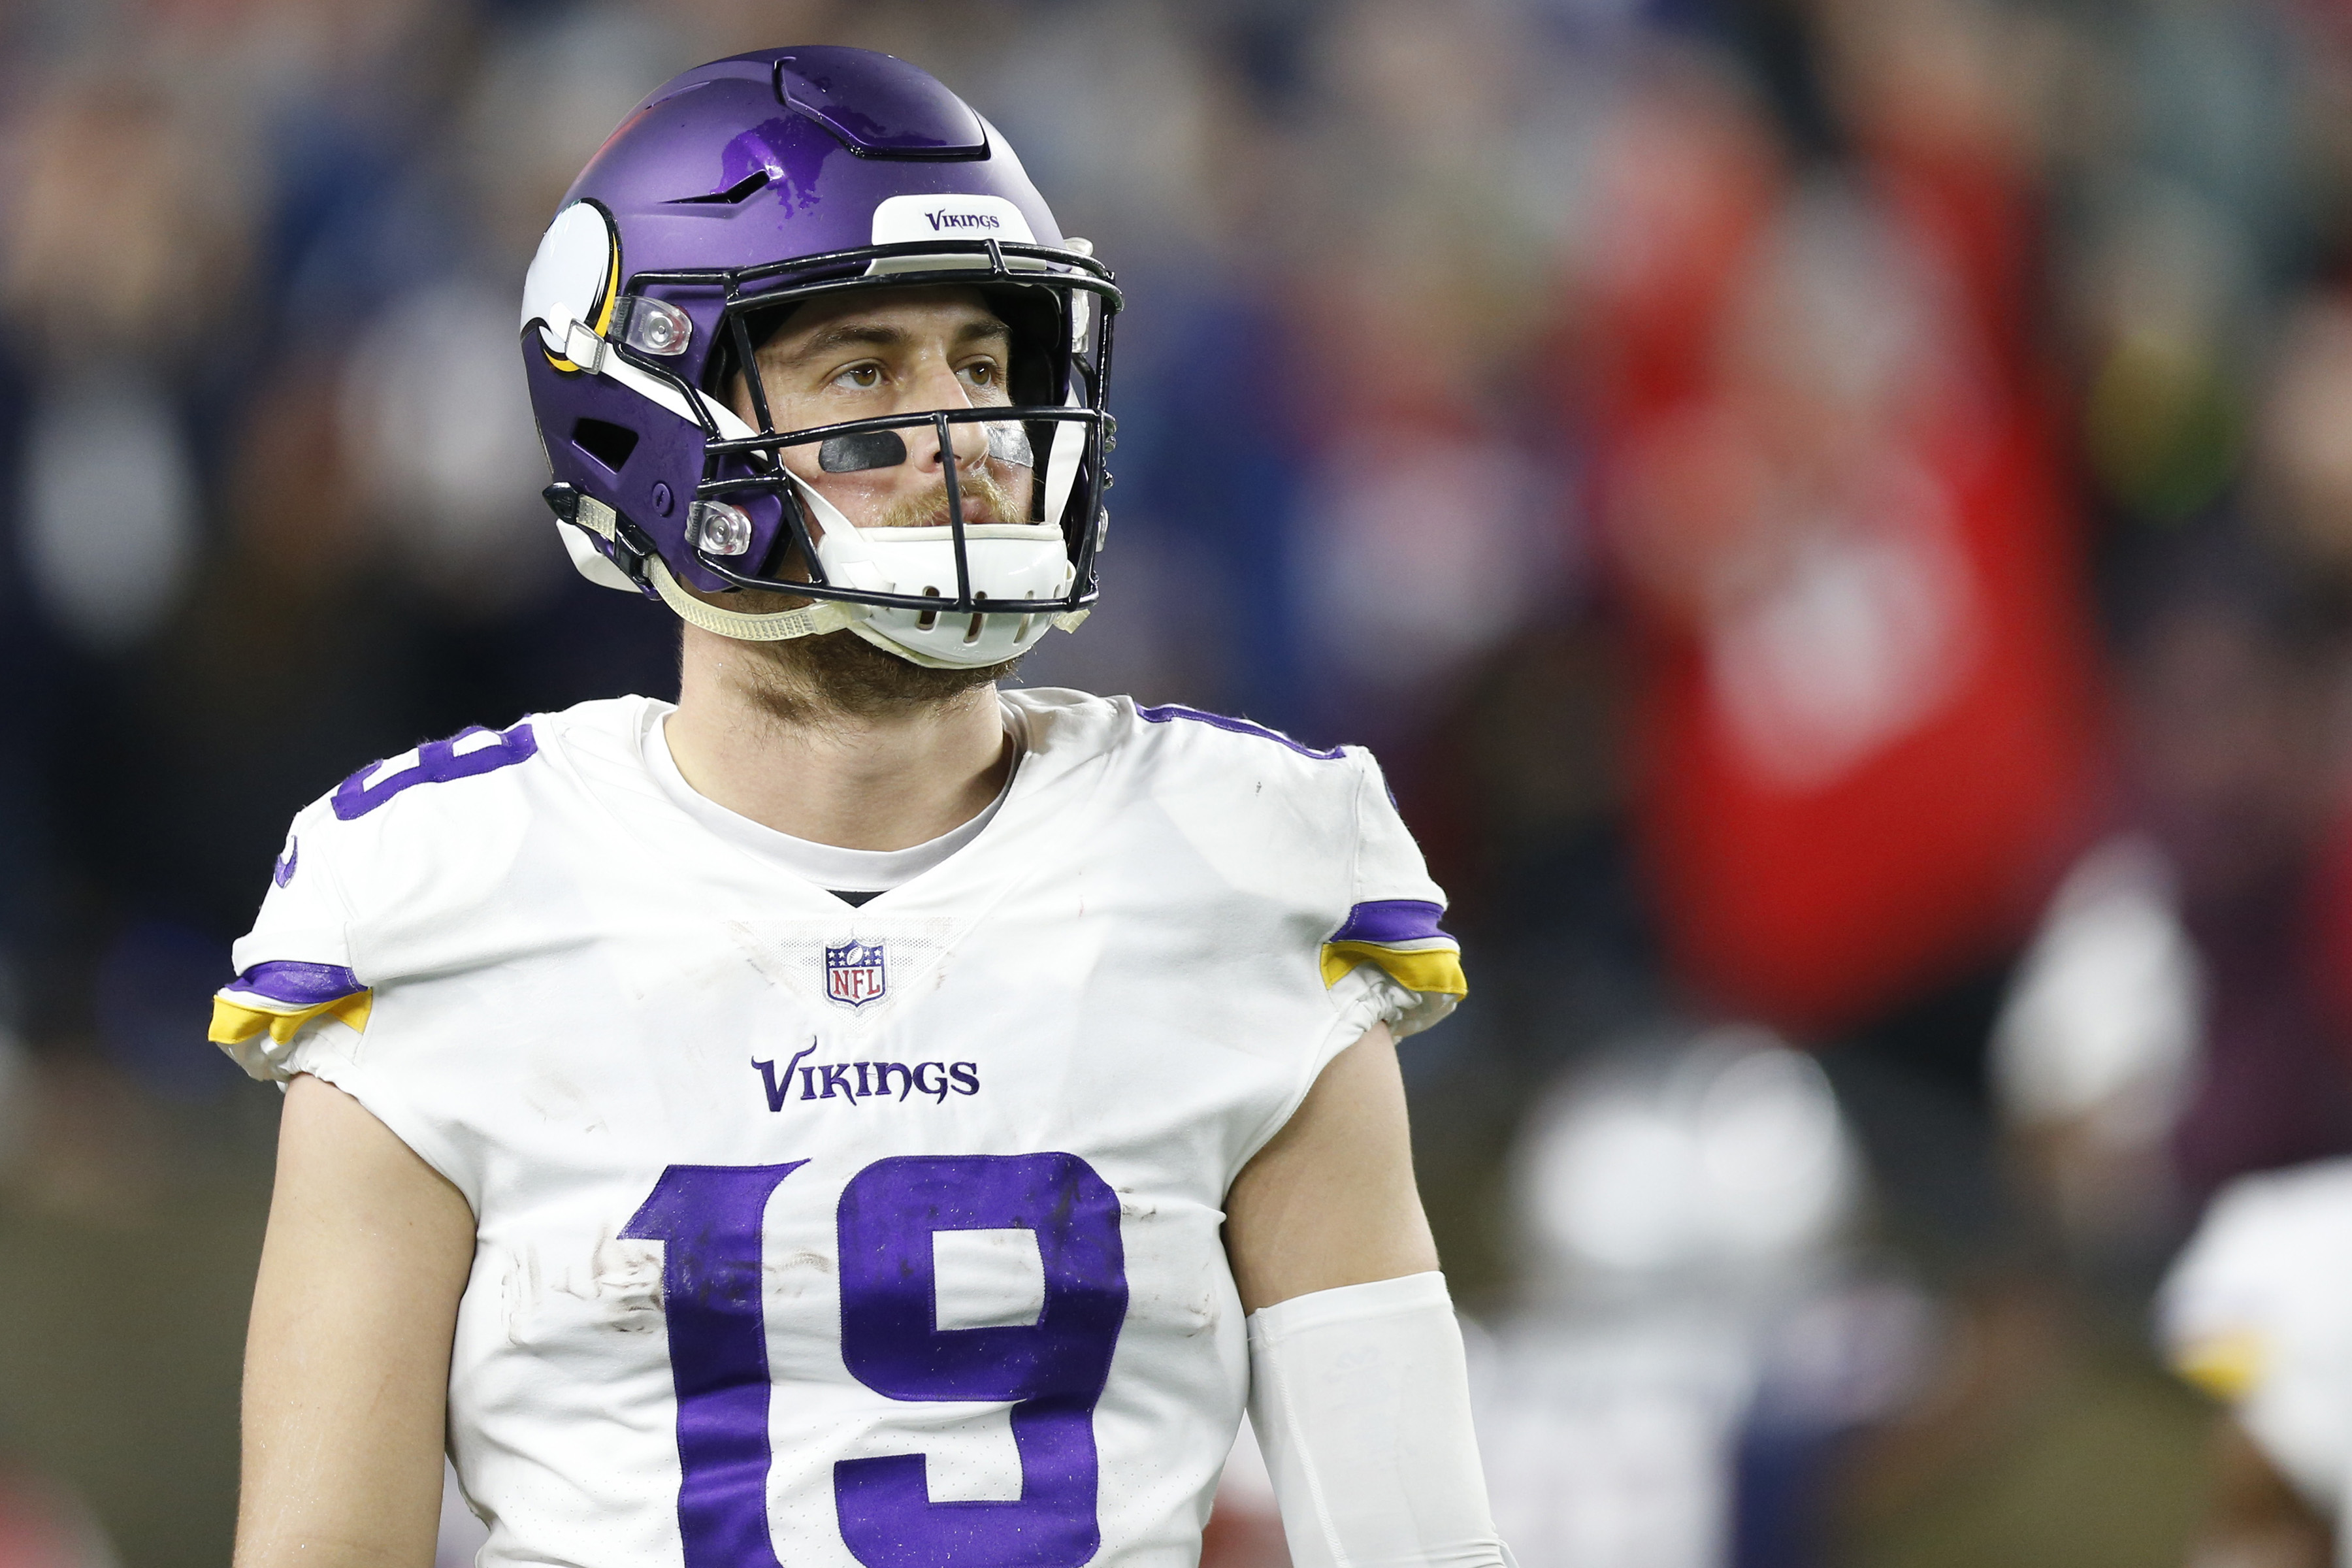 Bill Belichick on OMF details exchange with Adam Thielen: 'I have a lot of respect for him and the way he plays the game'